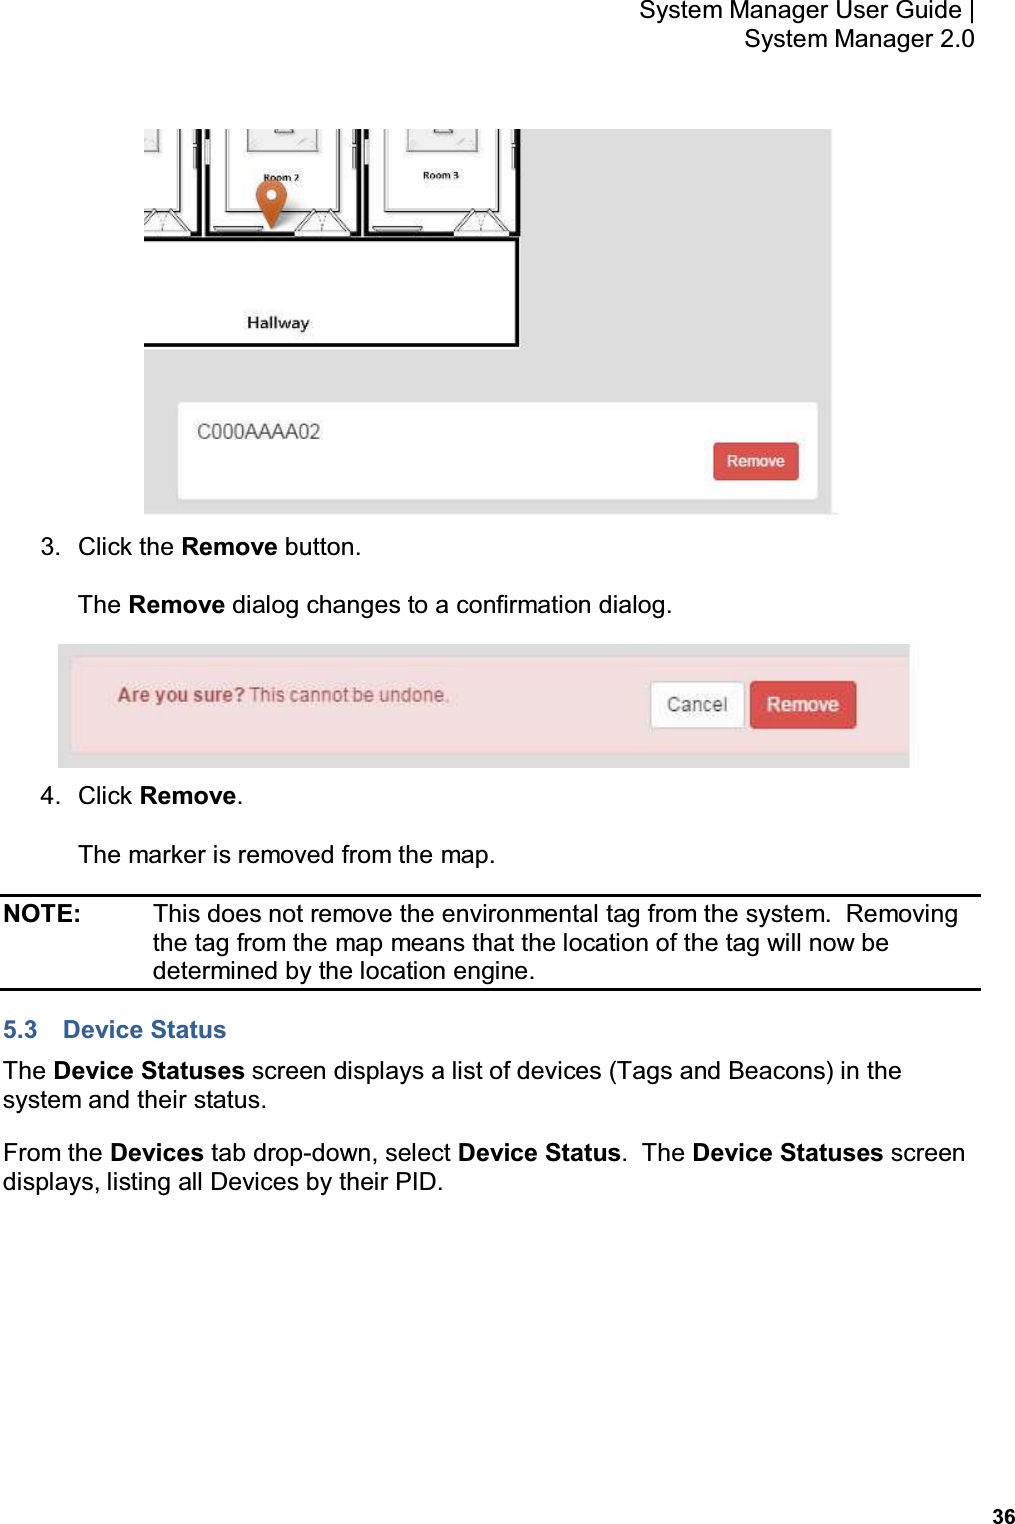 36 System Manager User Guide    System Manager 2.0  3.  Click the Remove button. The Remove dialog changes to a confirmation dialog.  4.  Click Remove. The marker is removed from the map. NOTE:    This does not remove the environmental tag from the system.  Removing the tag from the map means that the location of the tag will now be determined by the location engine. 5.3  Device Status The Device Statuses screen displays a list of devices (Tags and Beacons) in the system and their status. From the Devices tab drop-down, select Device Status.  The Device Statuses screen displays, listing all Devices by their PID.